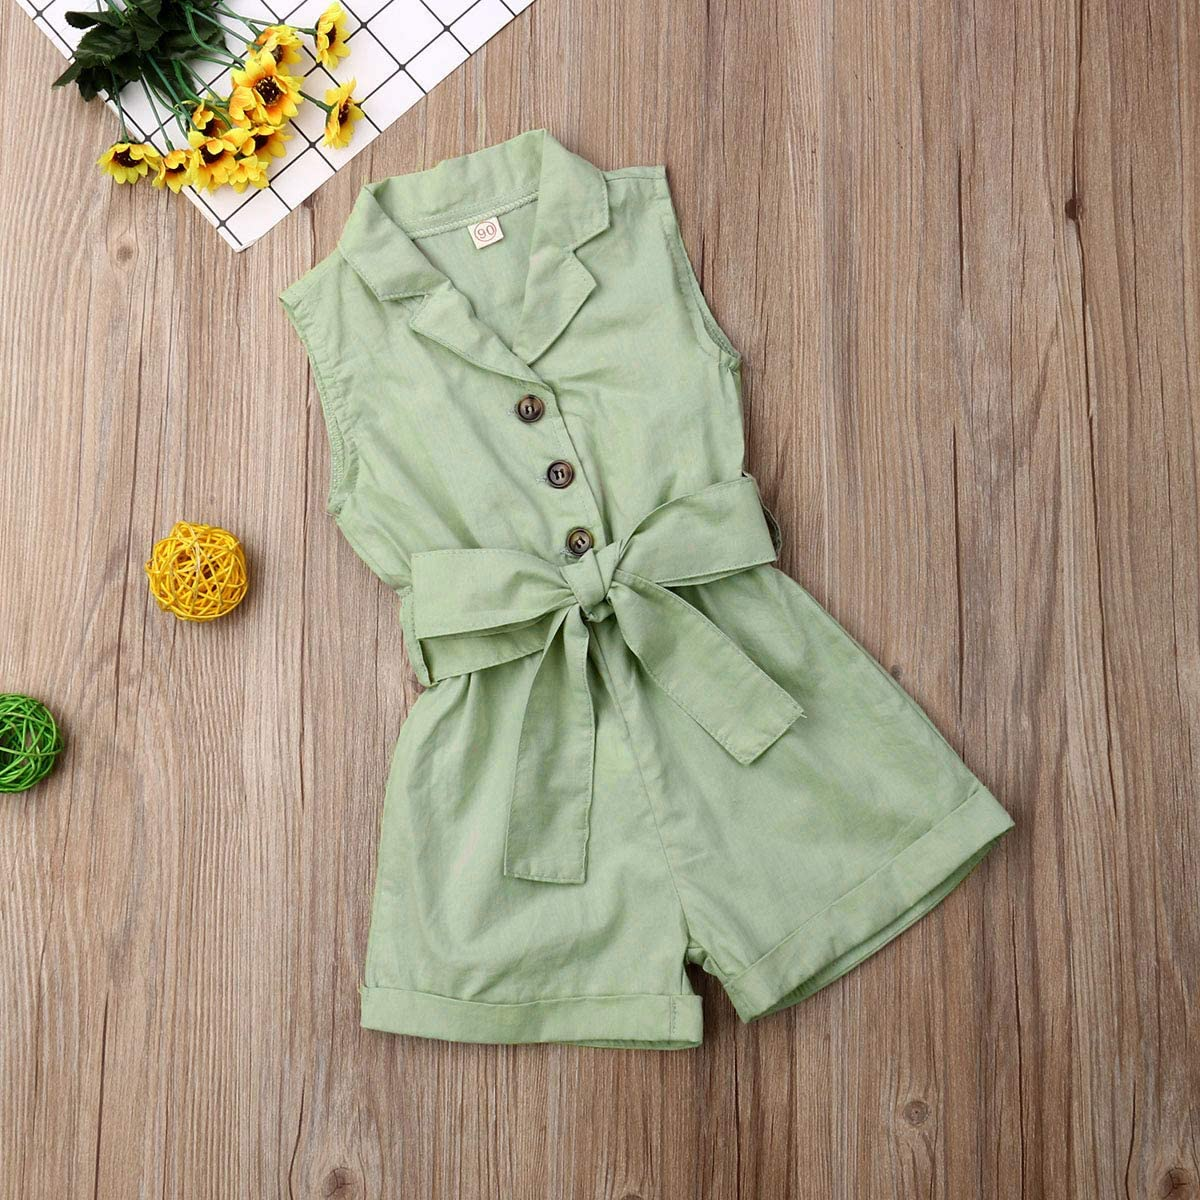 Toddler Kids Baby Girl Flutter Sleeve Short Romper Jumpsuit Botton Down Shirt Tops with Bowknot